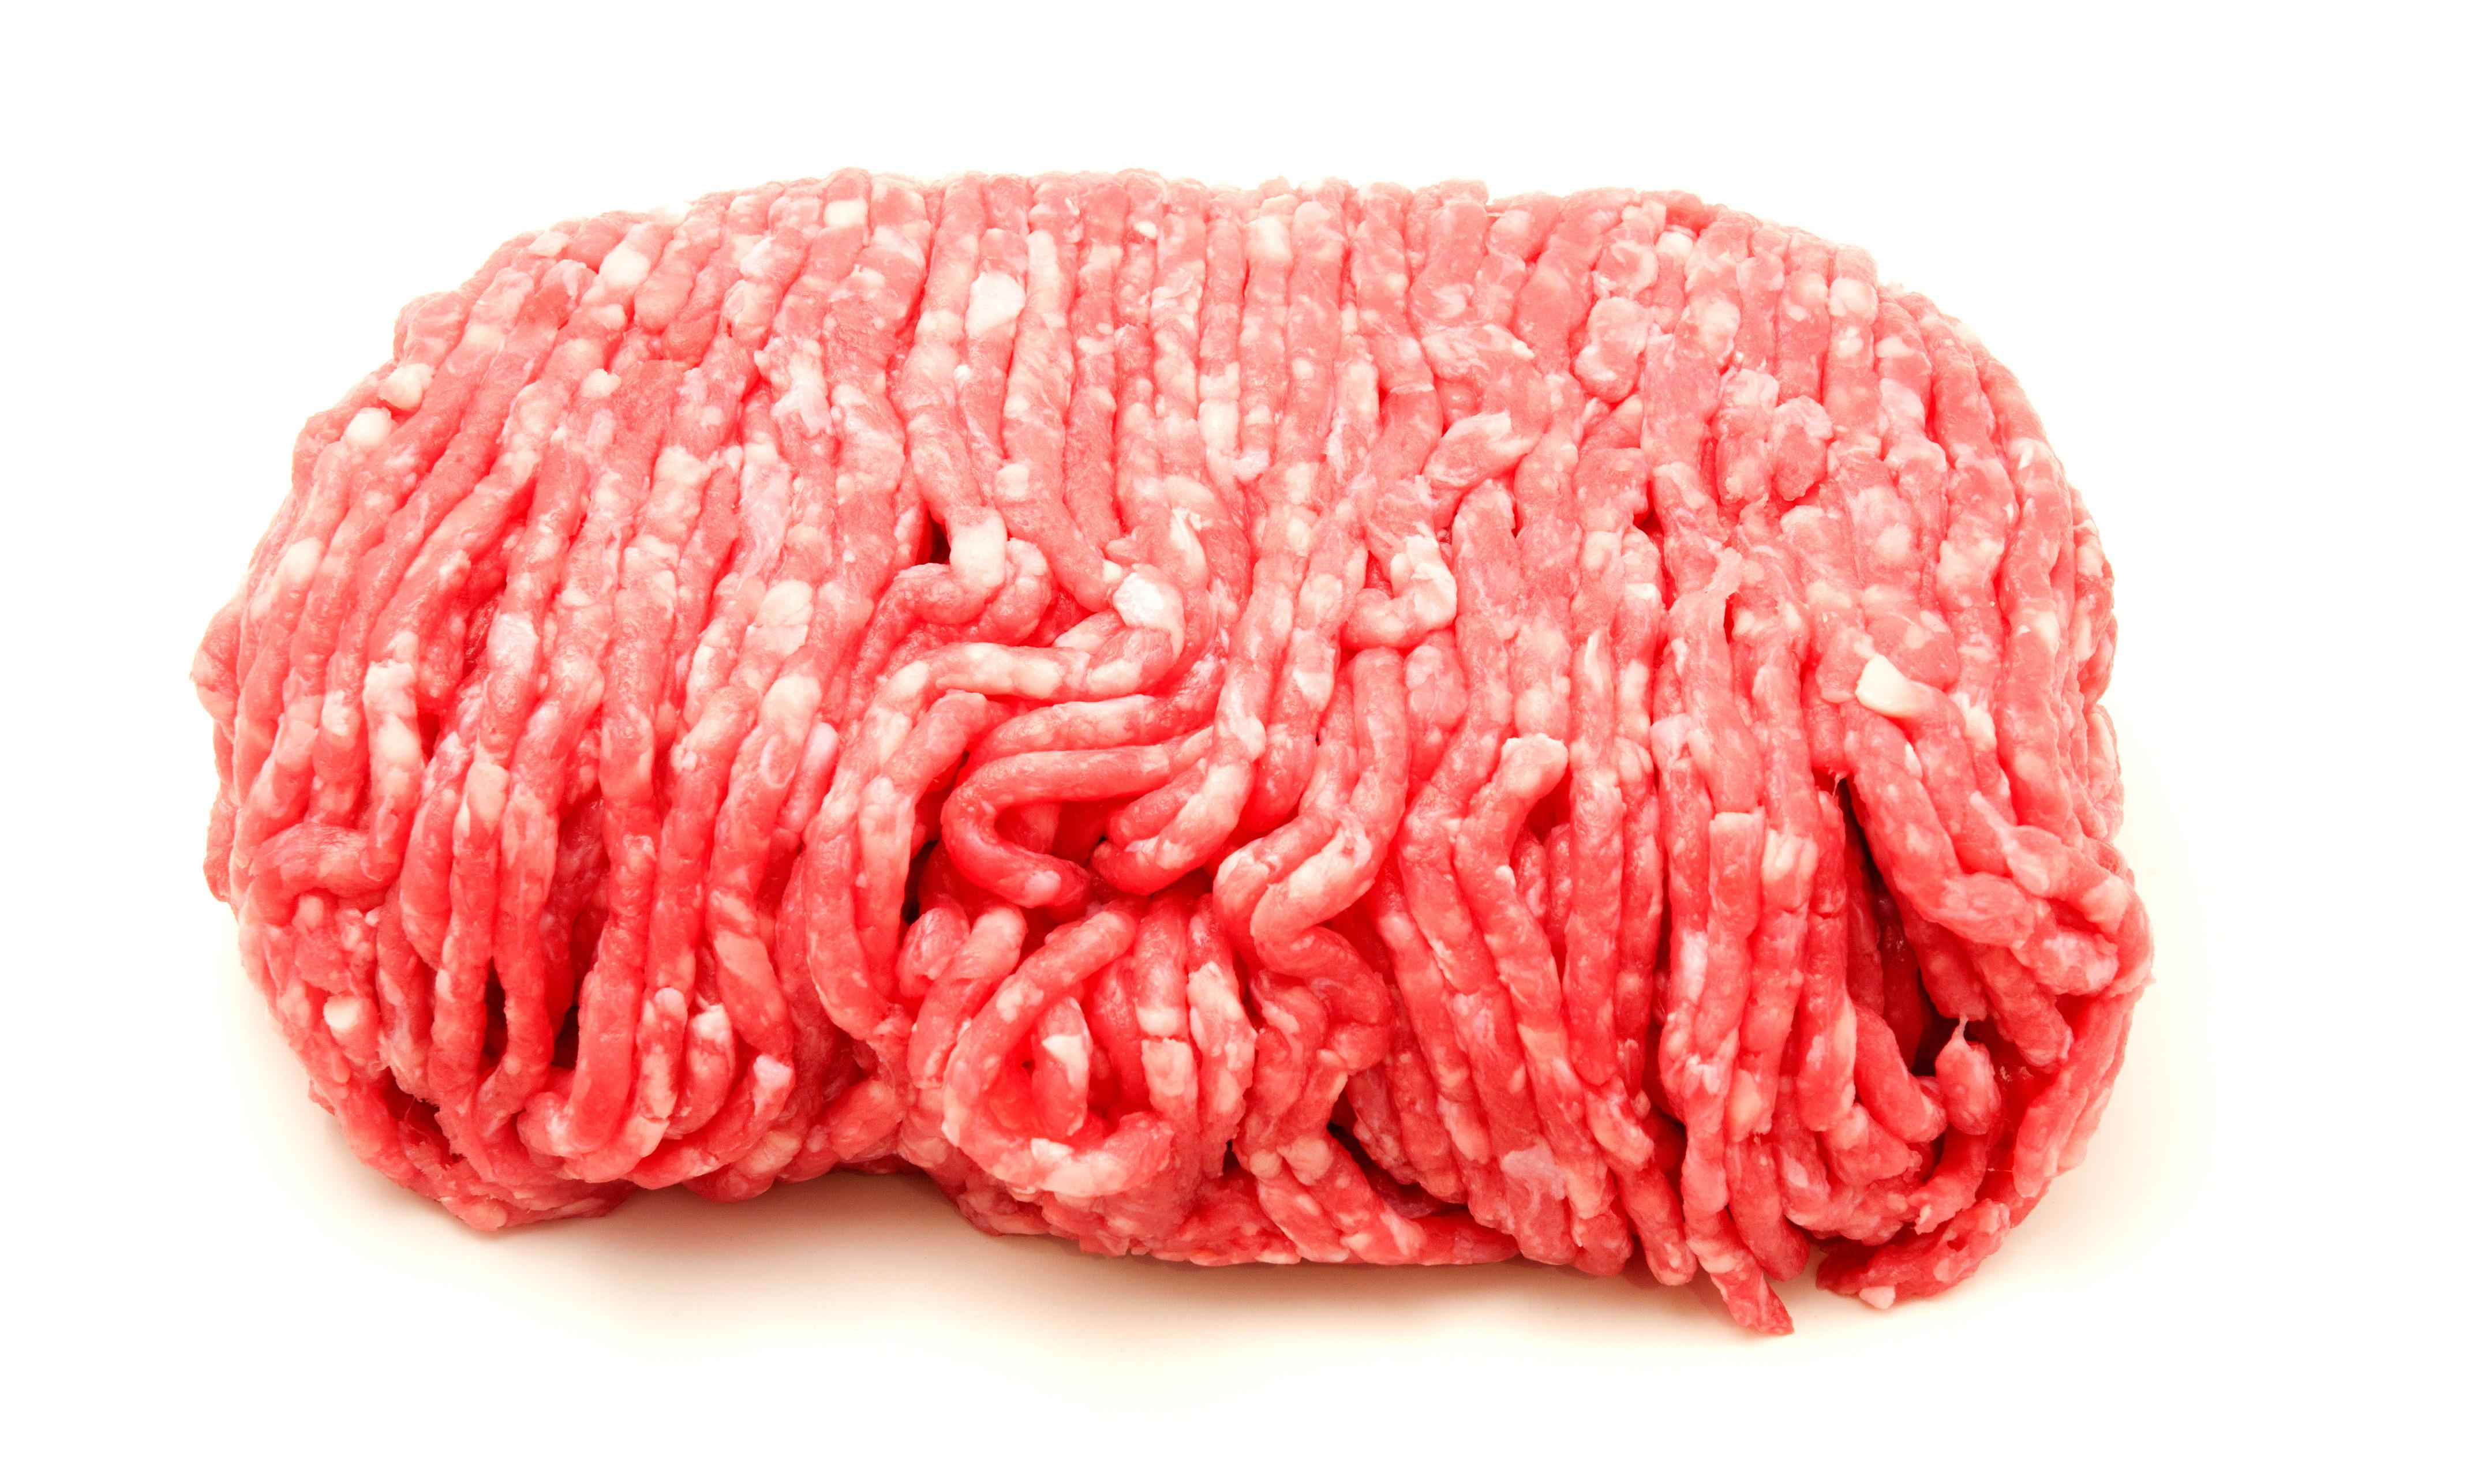 Recalls of 'potentially lethal' US meat and poultry nearly double since 2013